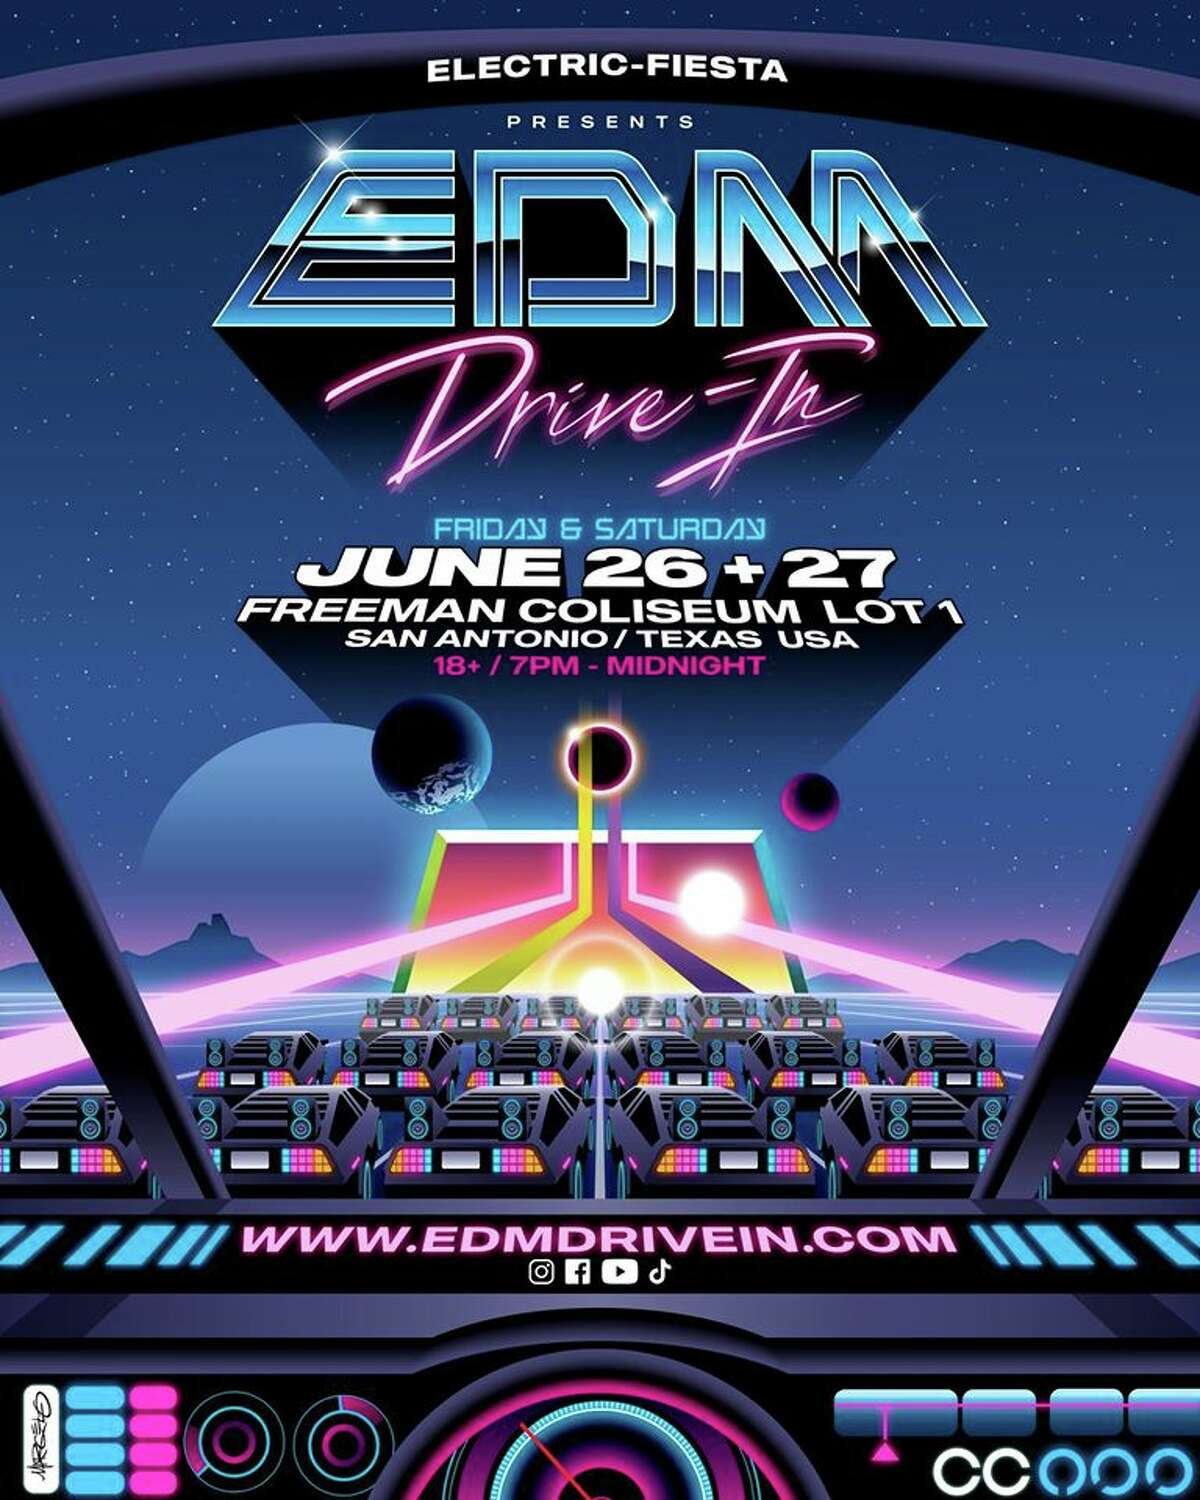 For those having in-person rave withdrawals, there will be an EDM (electric dance music) drive-in in June.